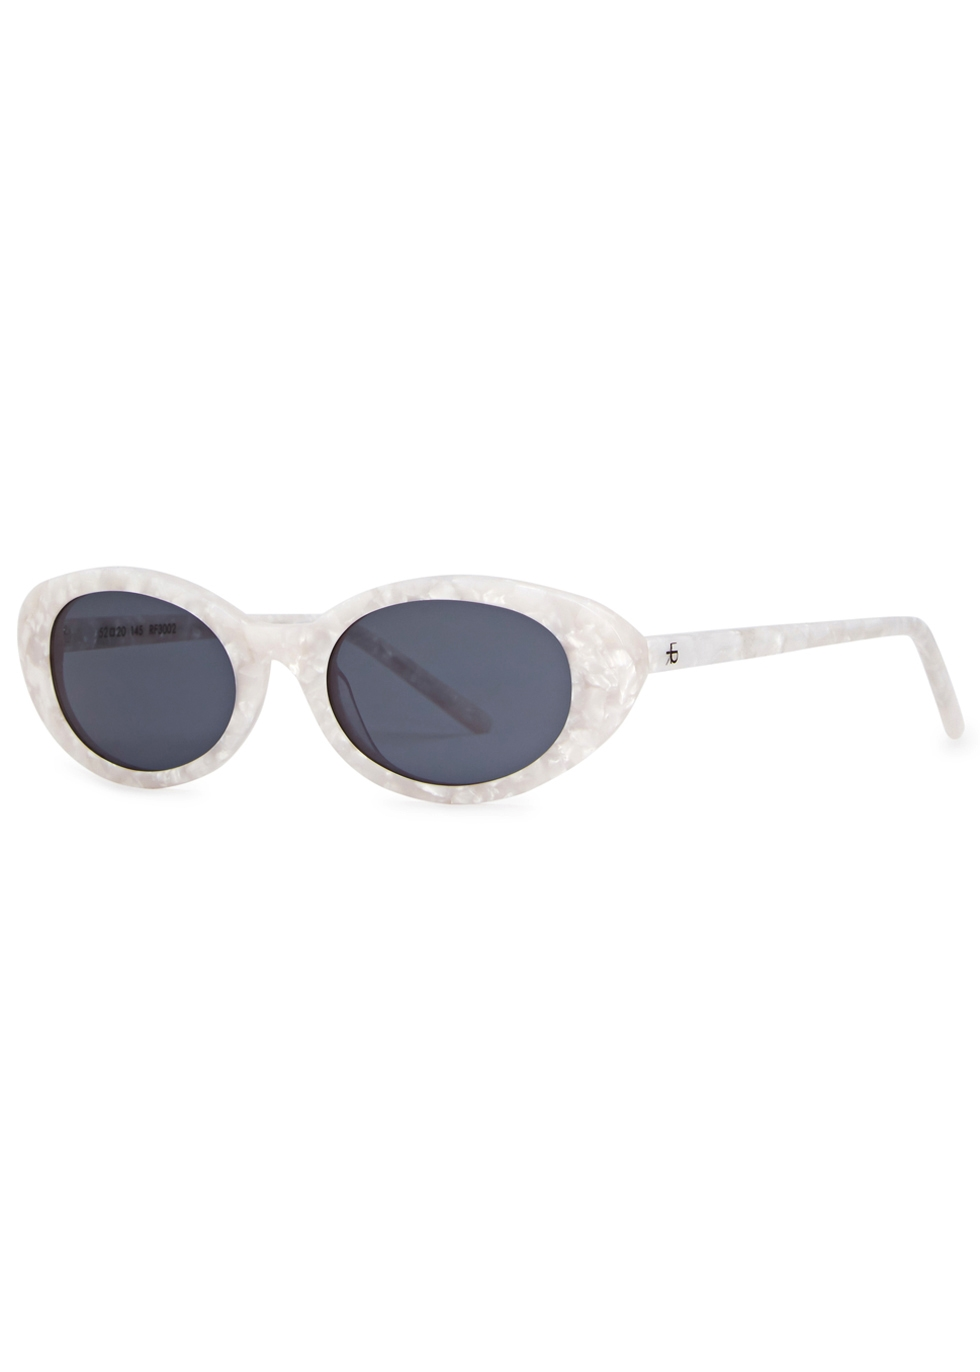 ROBERI AND FRAUD Betty Oval-Frame Sunglasses in White